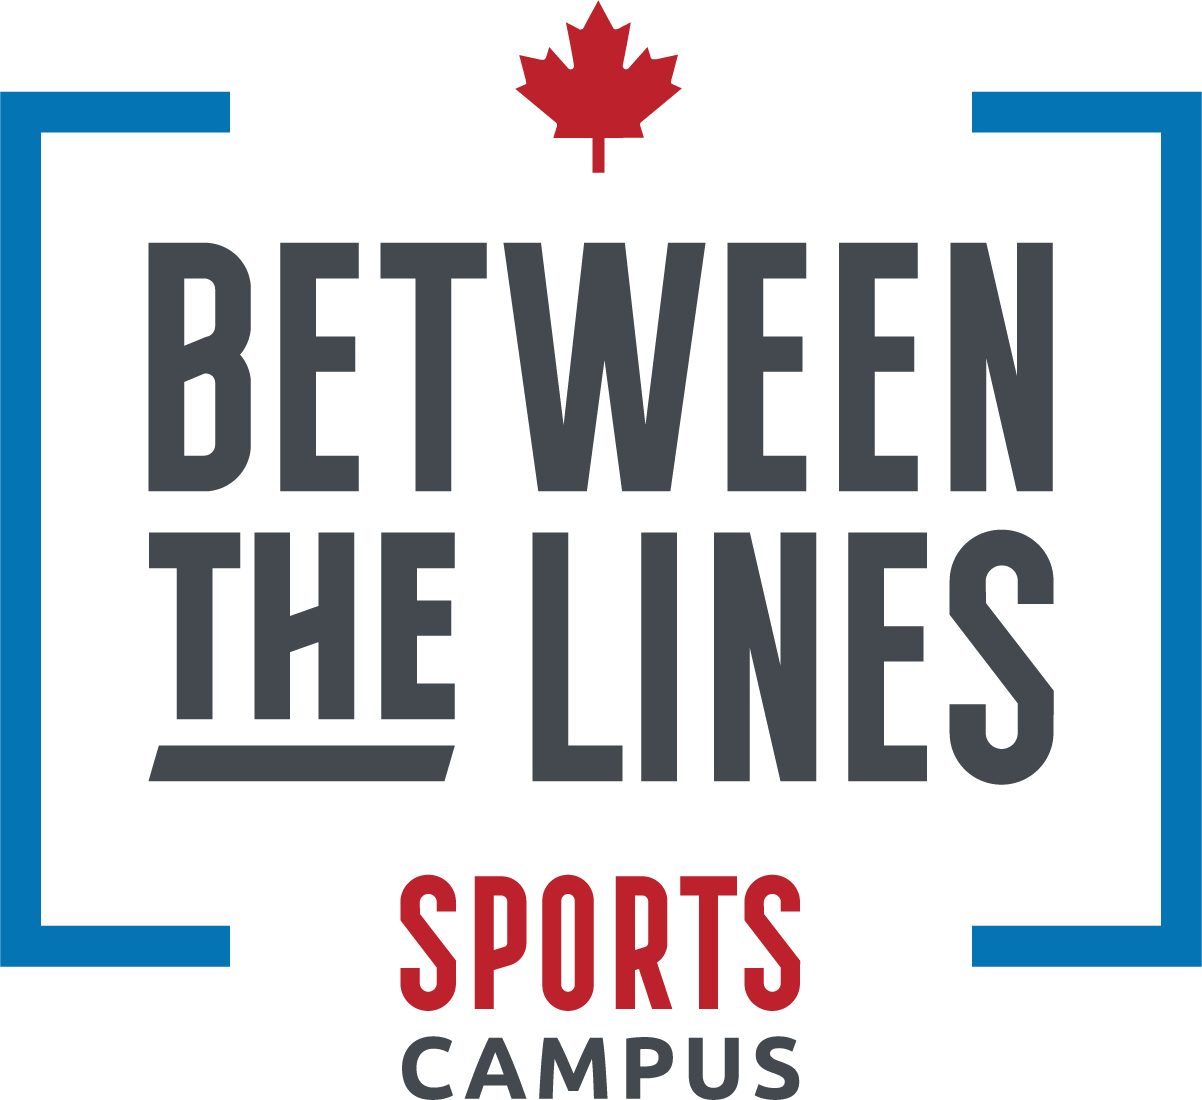 Between the Lines Sports Campus logo